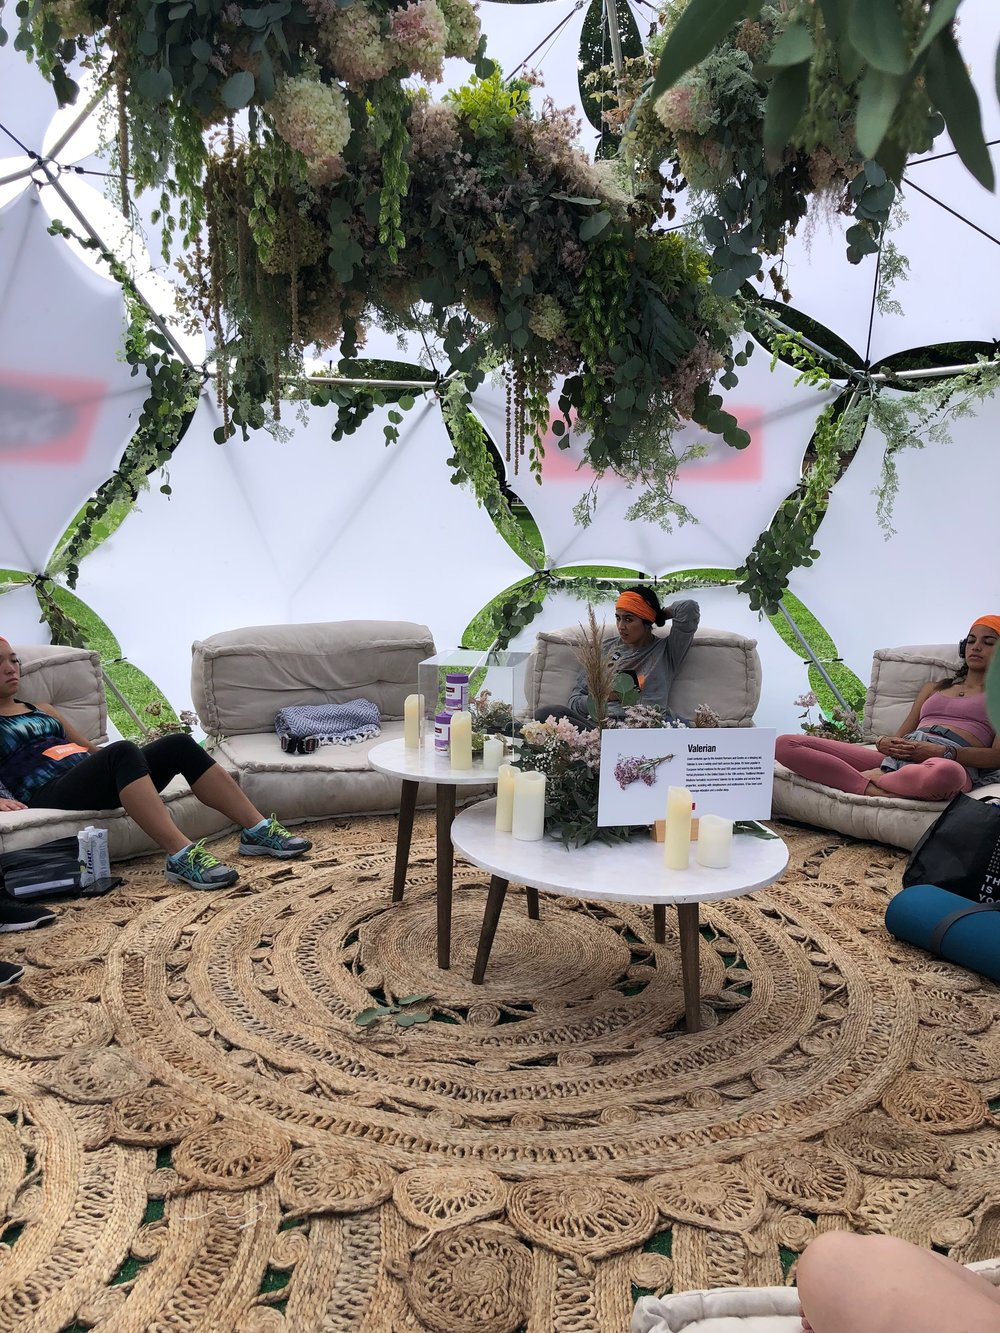 Swisse's Meditation room at Wanderlust 108.